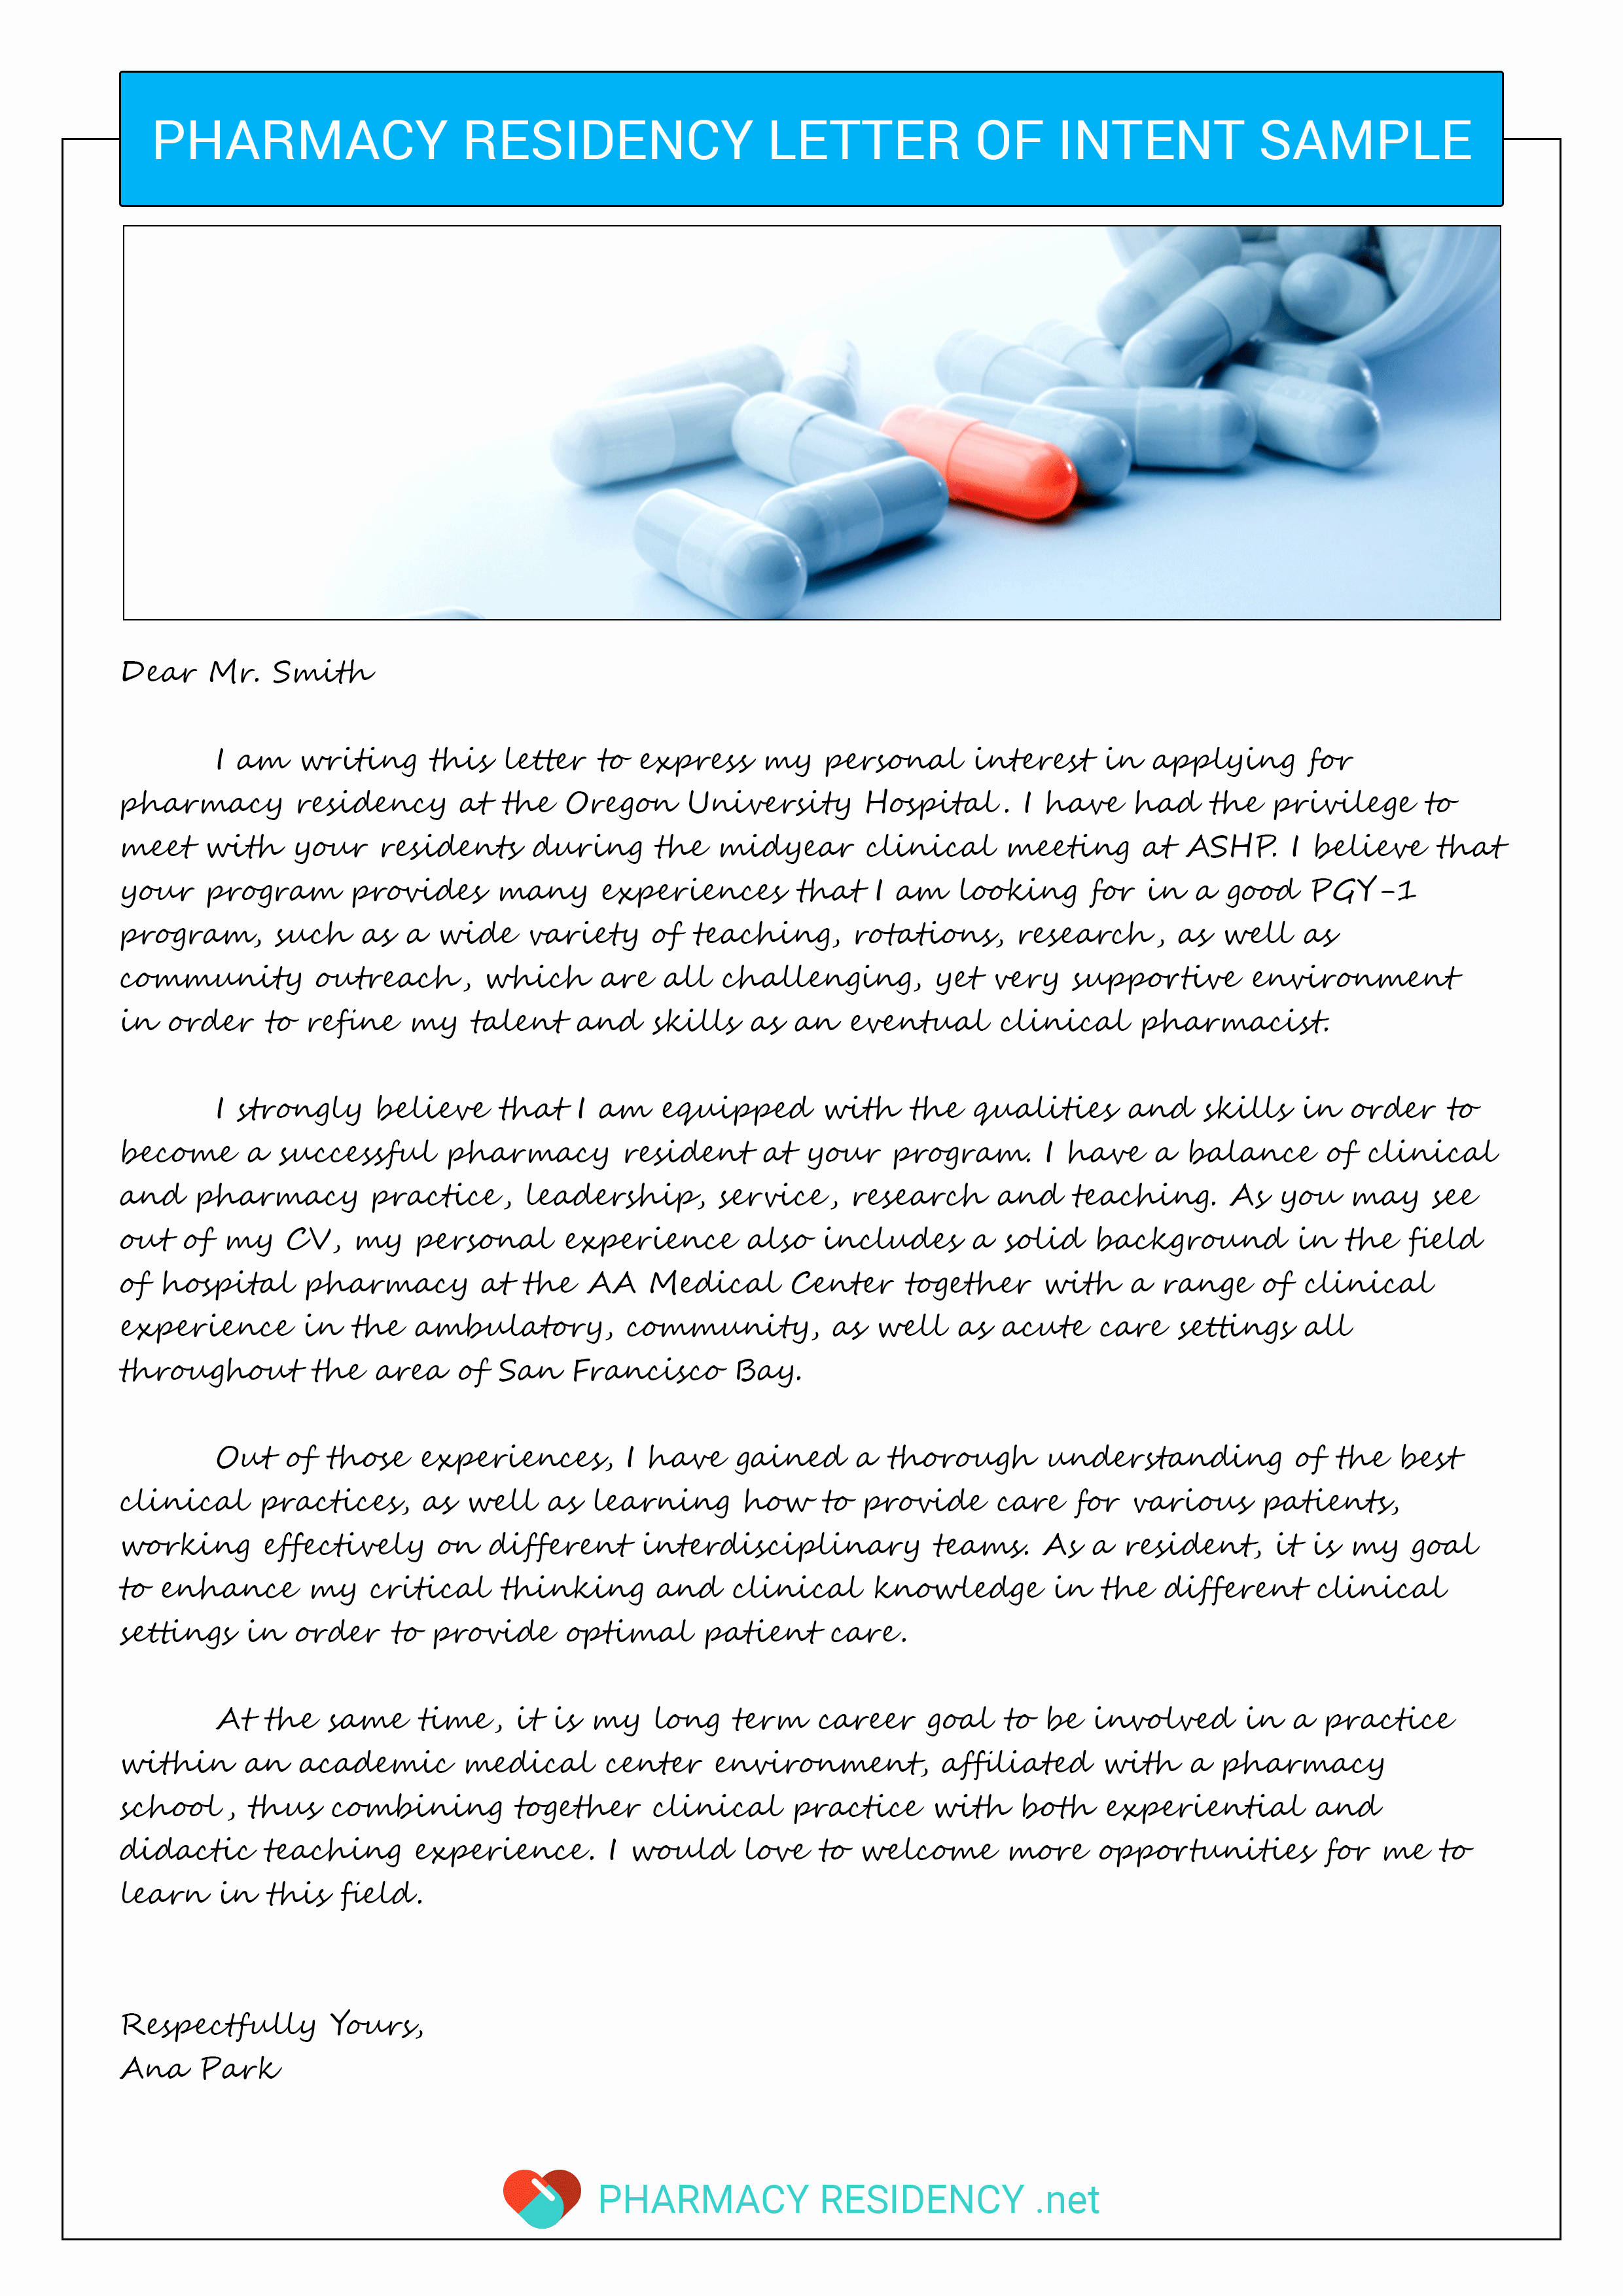 Sample Letter Of Recommendation Residency Unique Pharmacy Letter Of Intent Sample